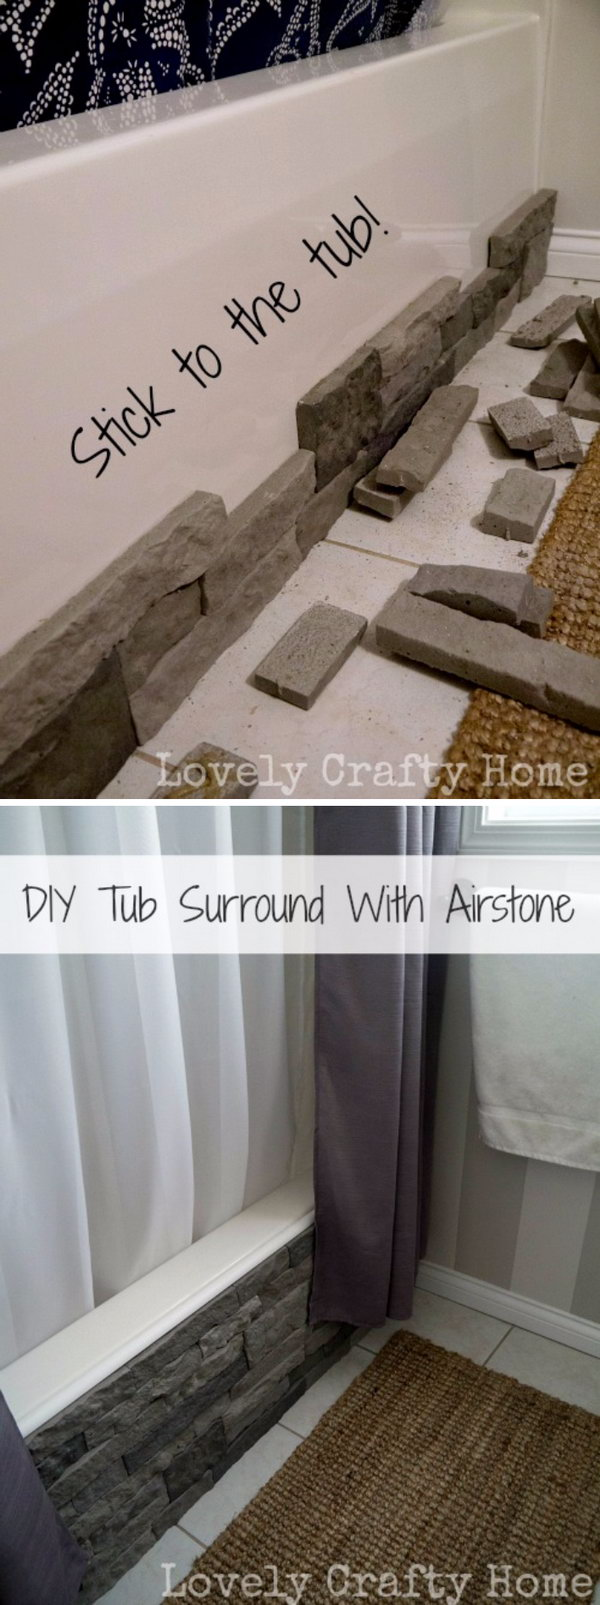 Update Your Boring Builder Bathtub With Airstone.